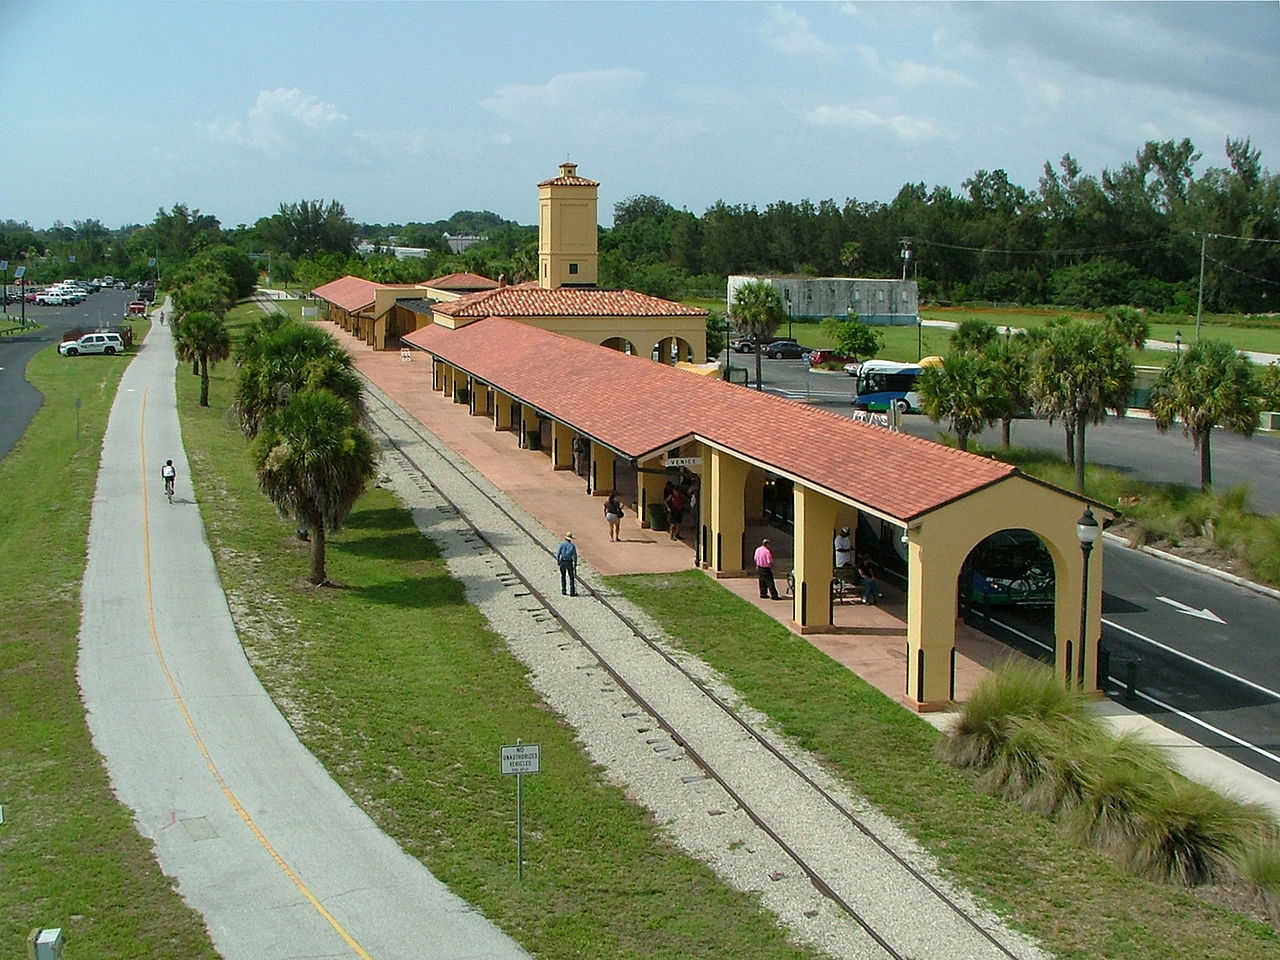 The Venice Depot was built in 1928 and remains an enduring symbol for the role the railroad played in the city's history.